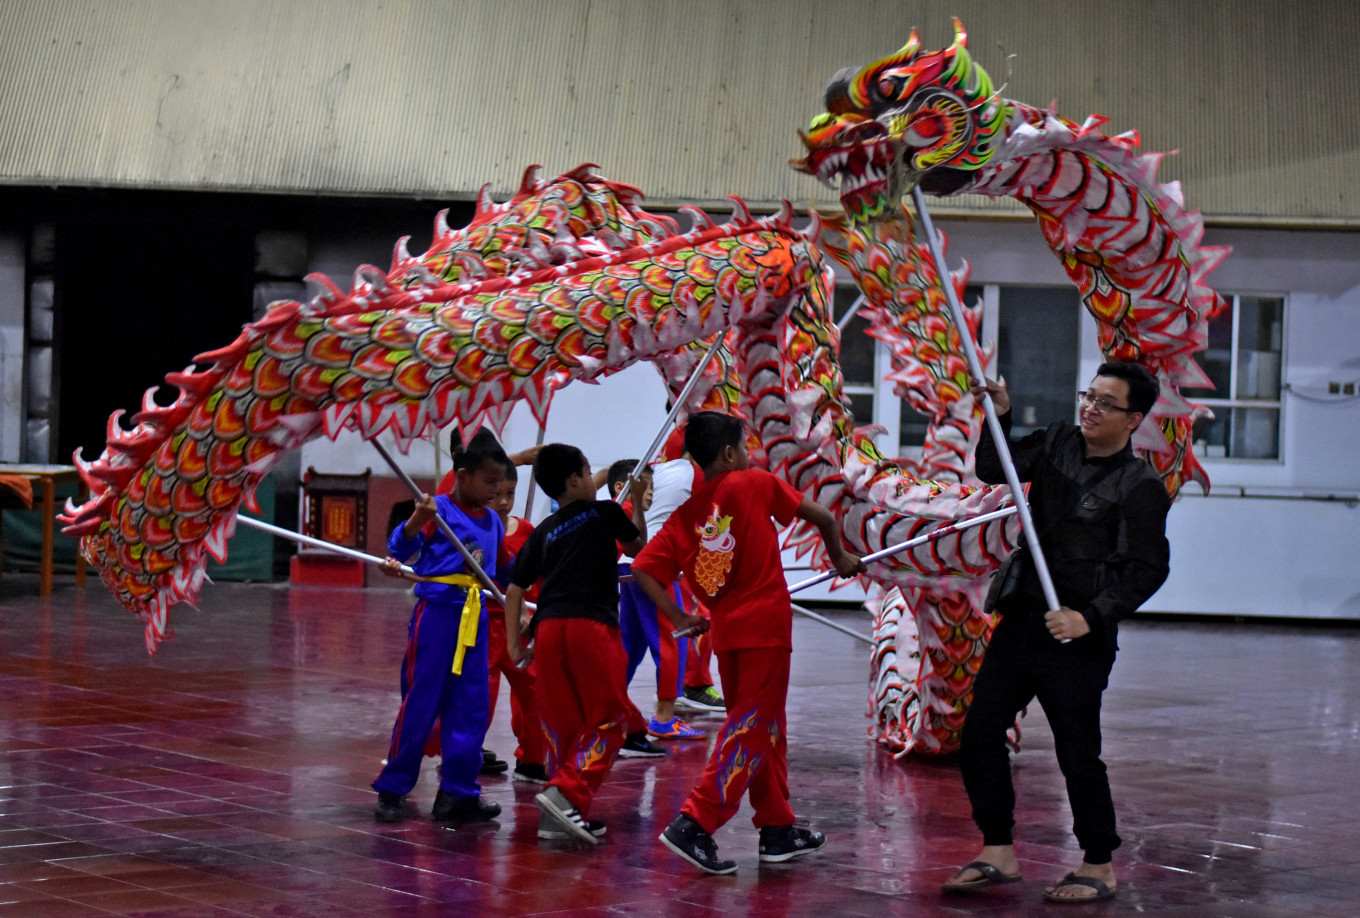 Handoko Prayogo (in black suit) trains children in the basic moves of the barongsai (lion dance) and the Leang Leong dragon dance at the Eng An Kiong Chinese temple in Malang, East Java, on Jan. 19. JP/Aman Rochman